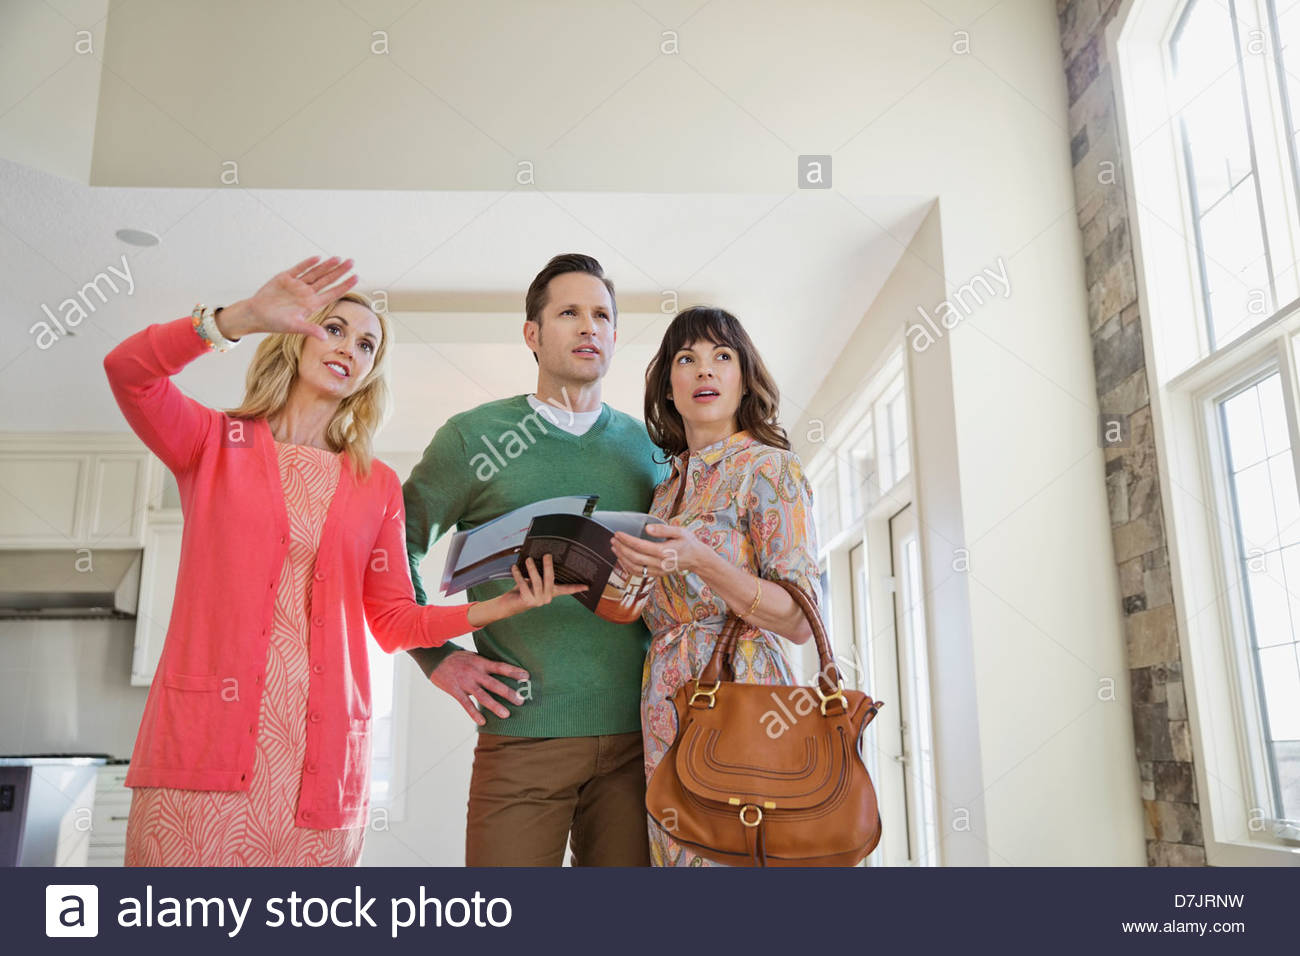 Female realtor showing new home to couple Stock Photo